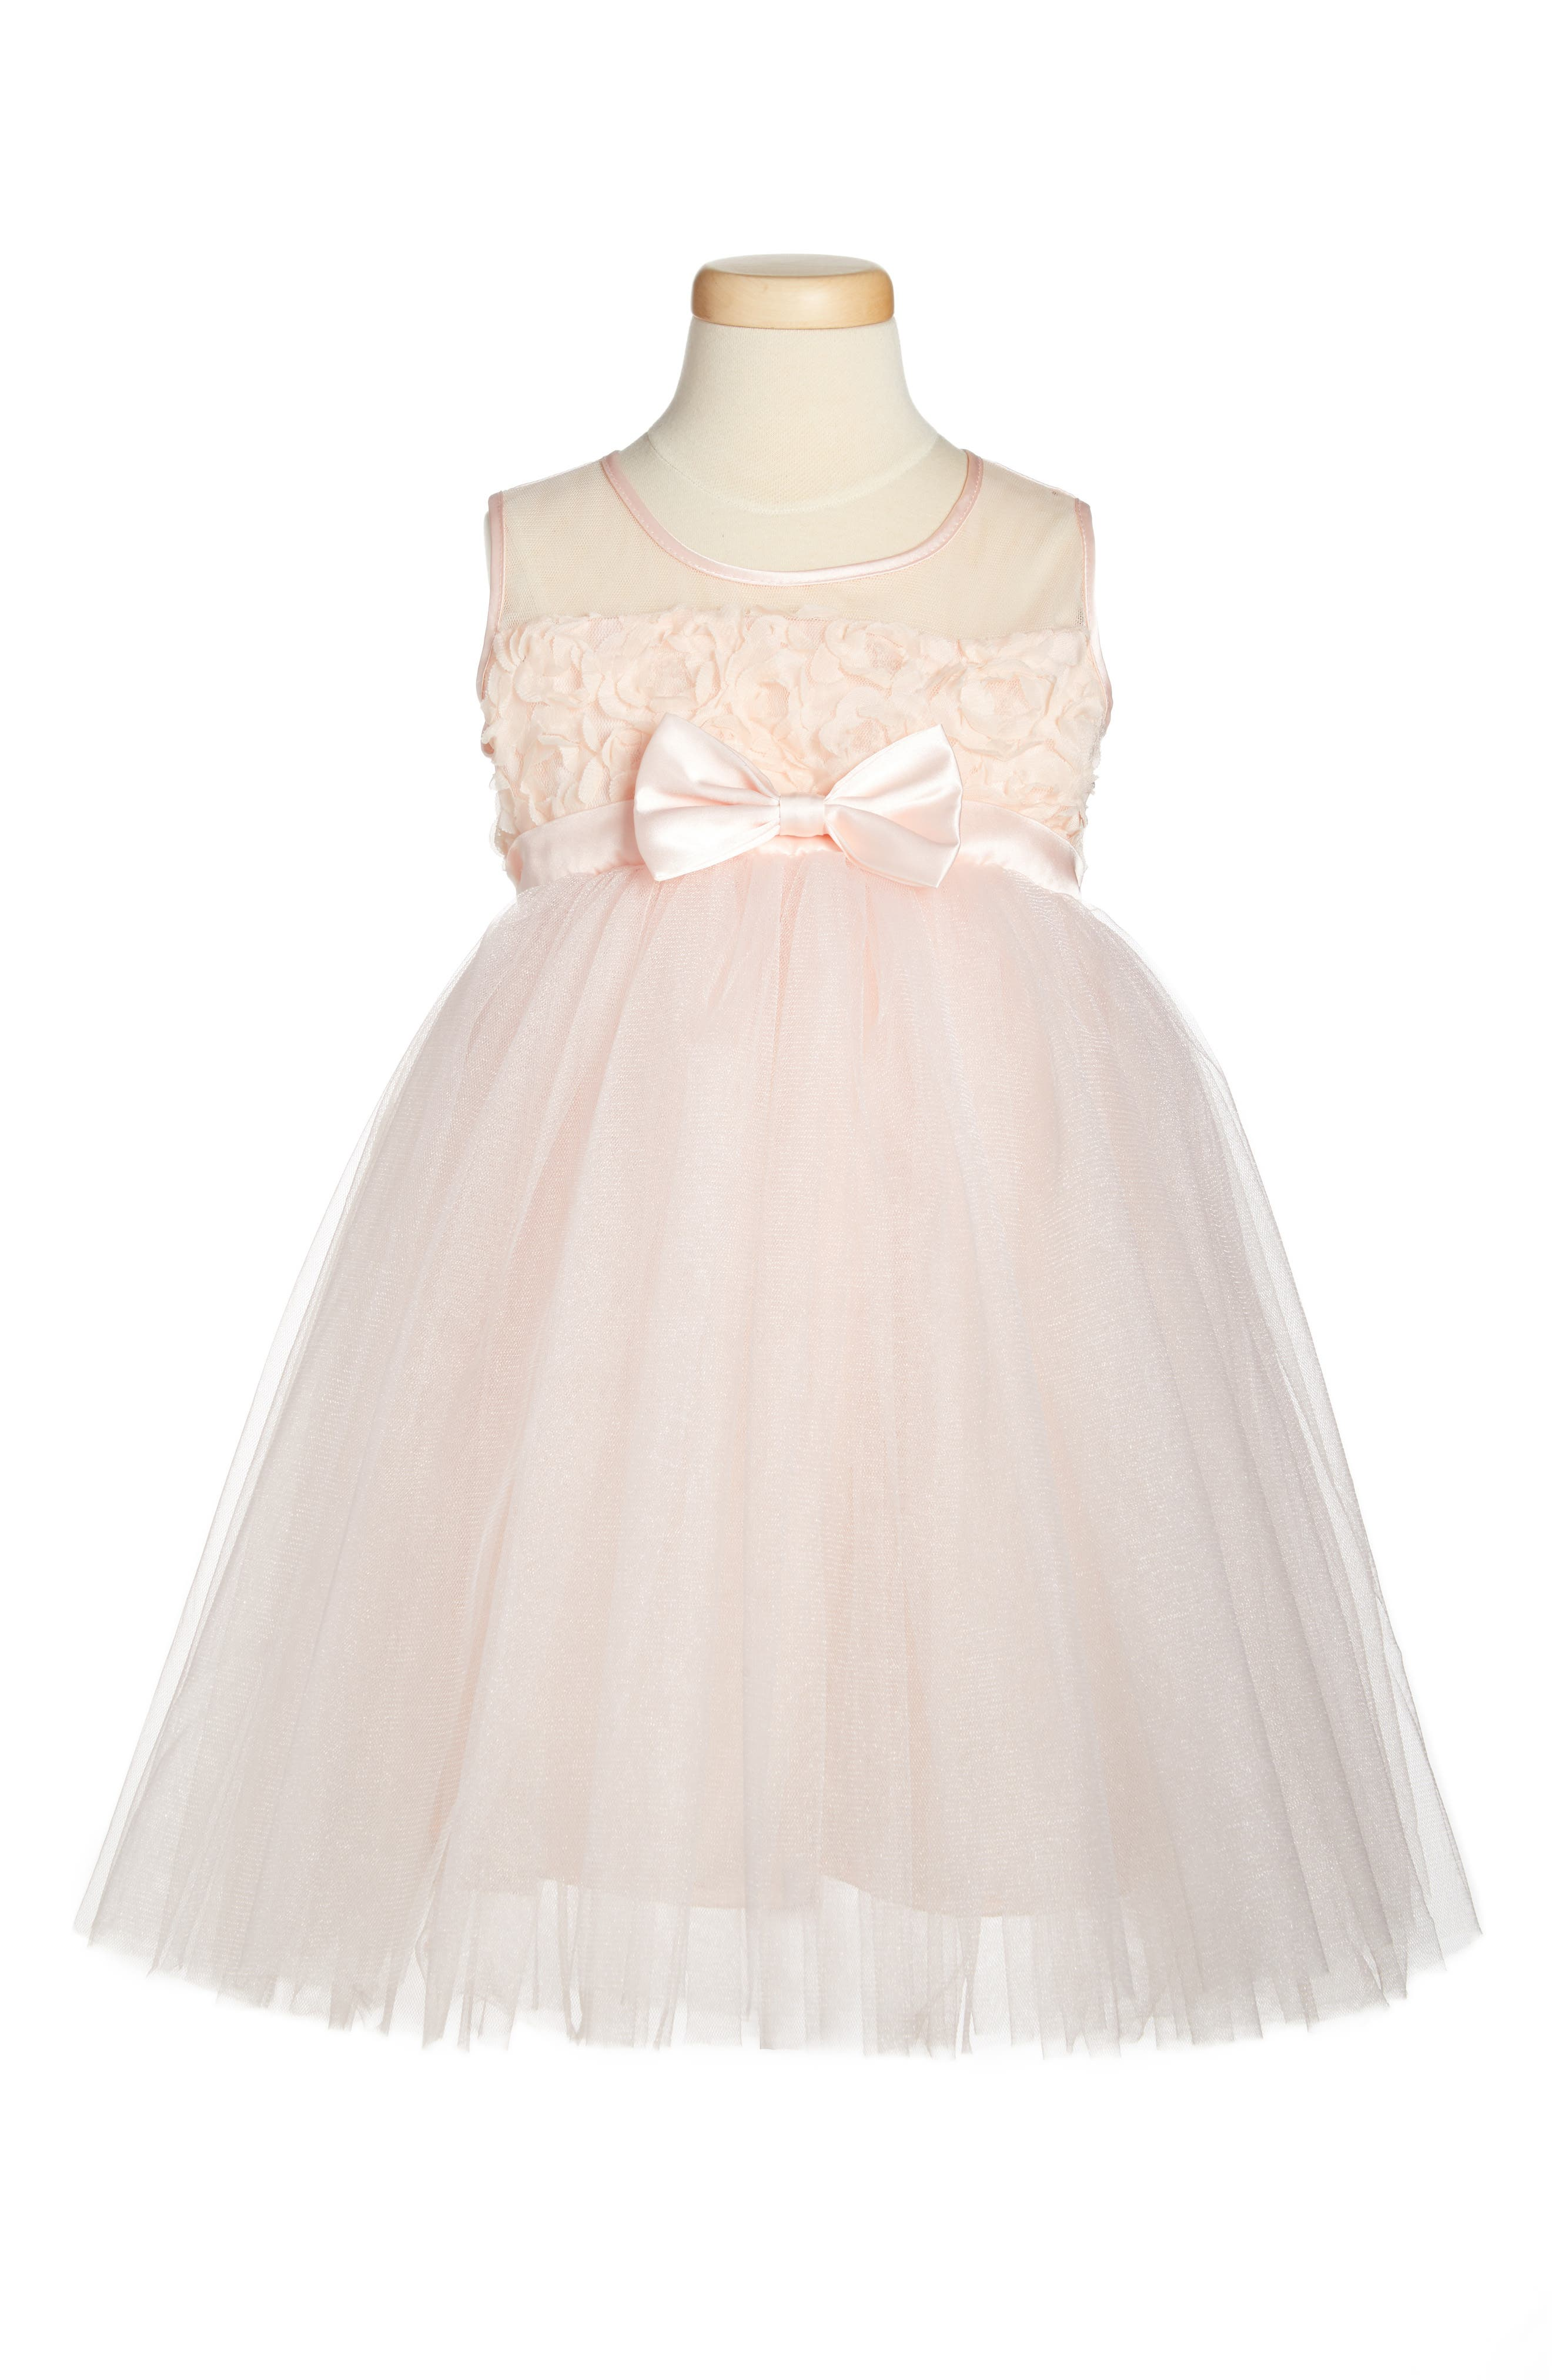 POPATU,                             Floral Tulle Dress,                             Main thumbnail 1, color,                             PINK